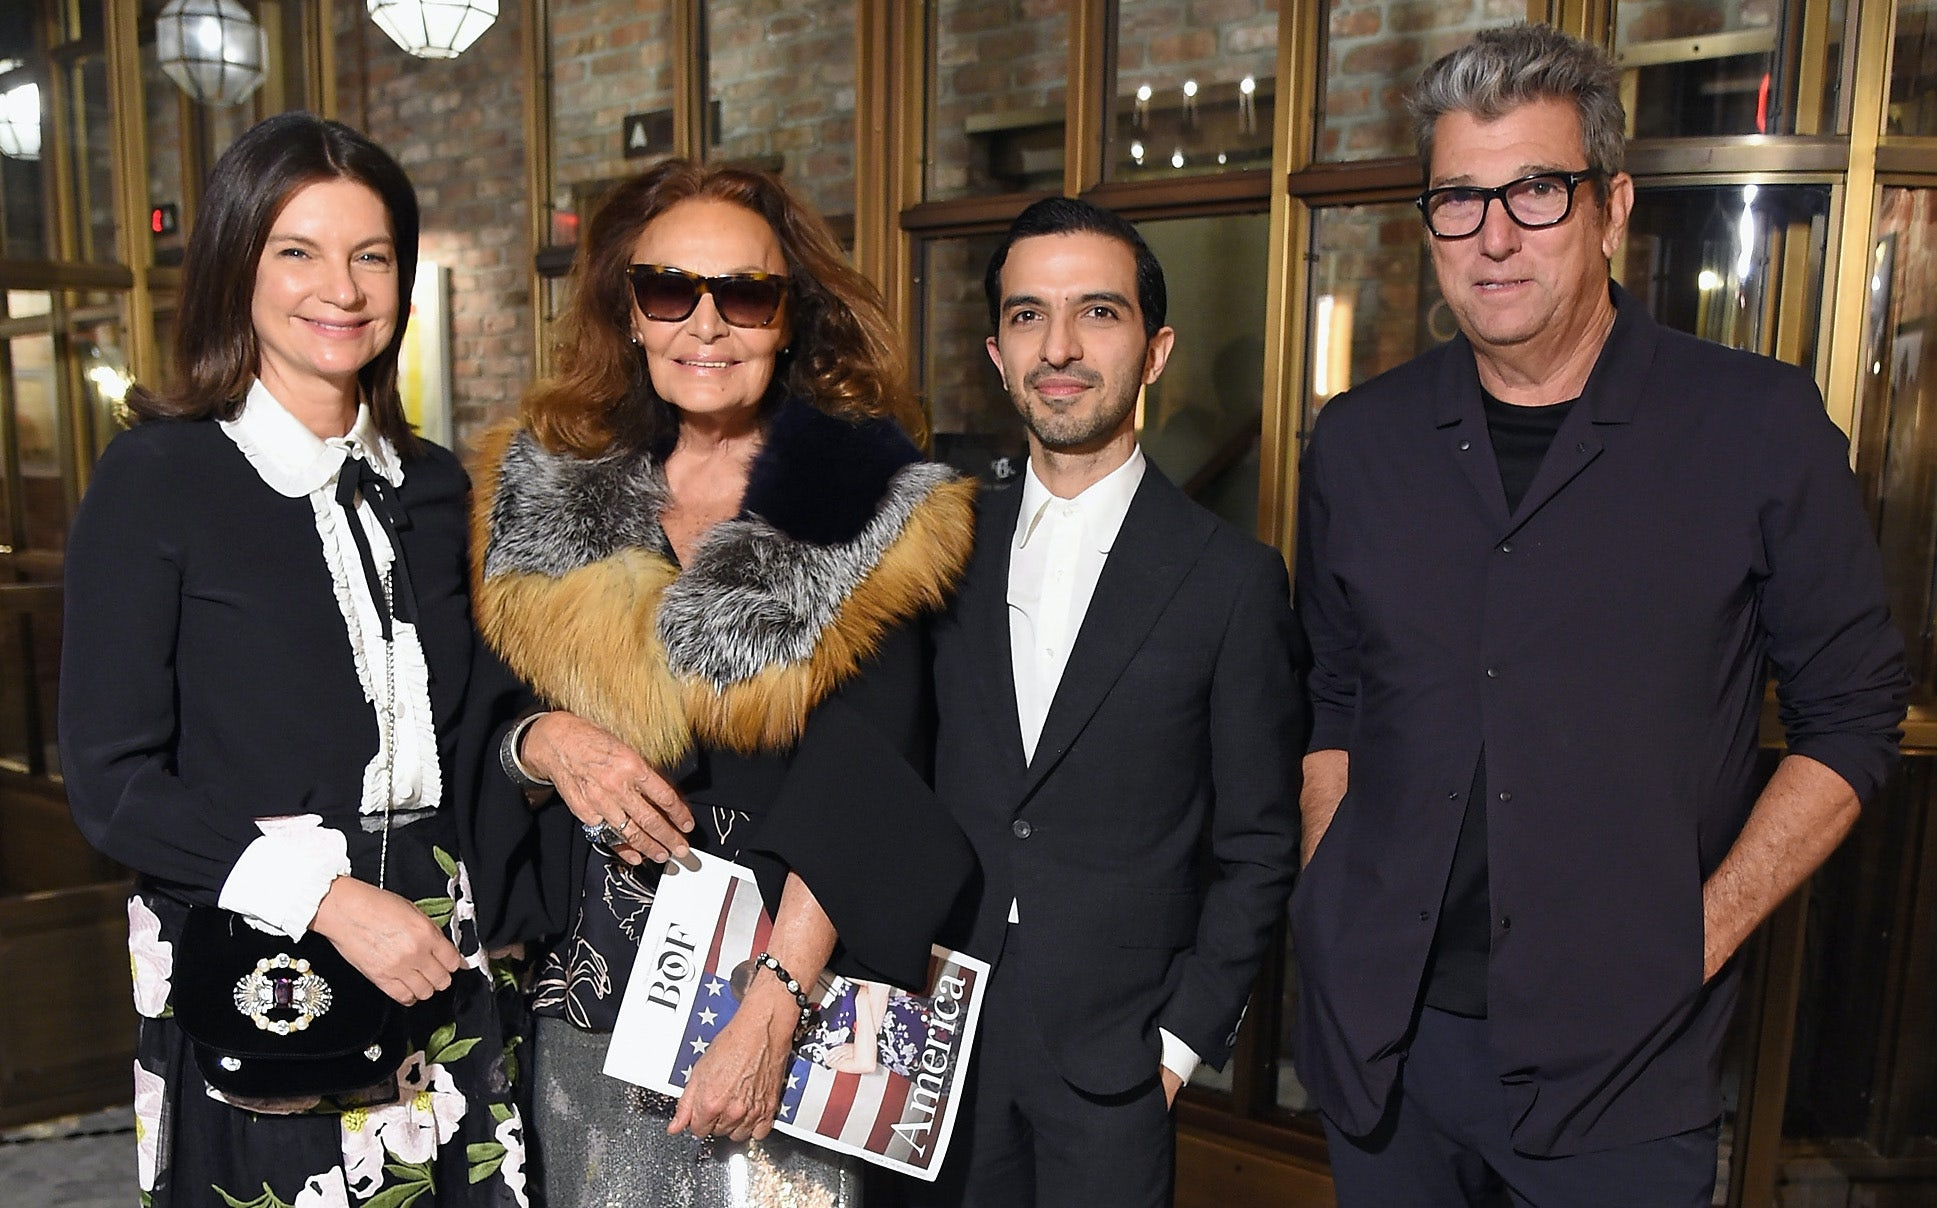 Natalie Massenet, Diane von Furstenberg, Imran Amed, and Andrew Rosen | Source: Michael Loccisano/Getty Images